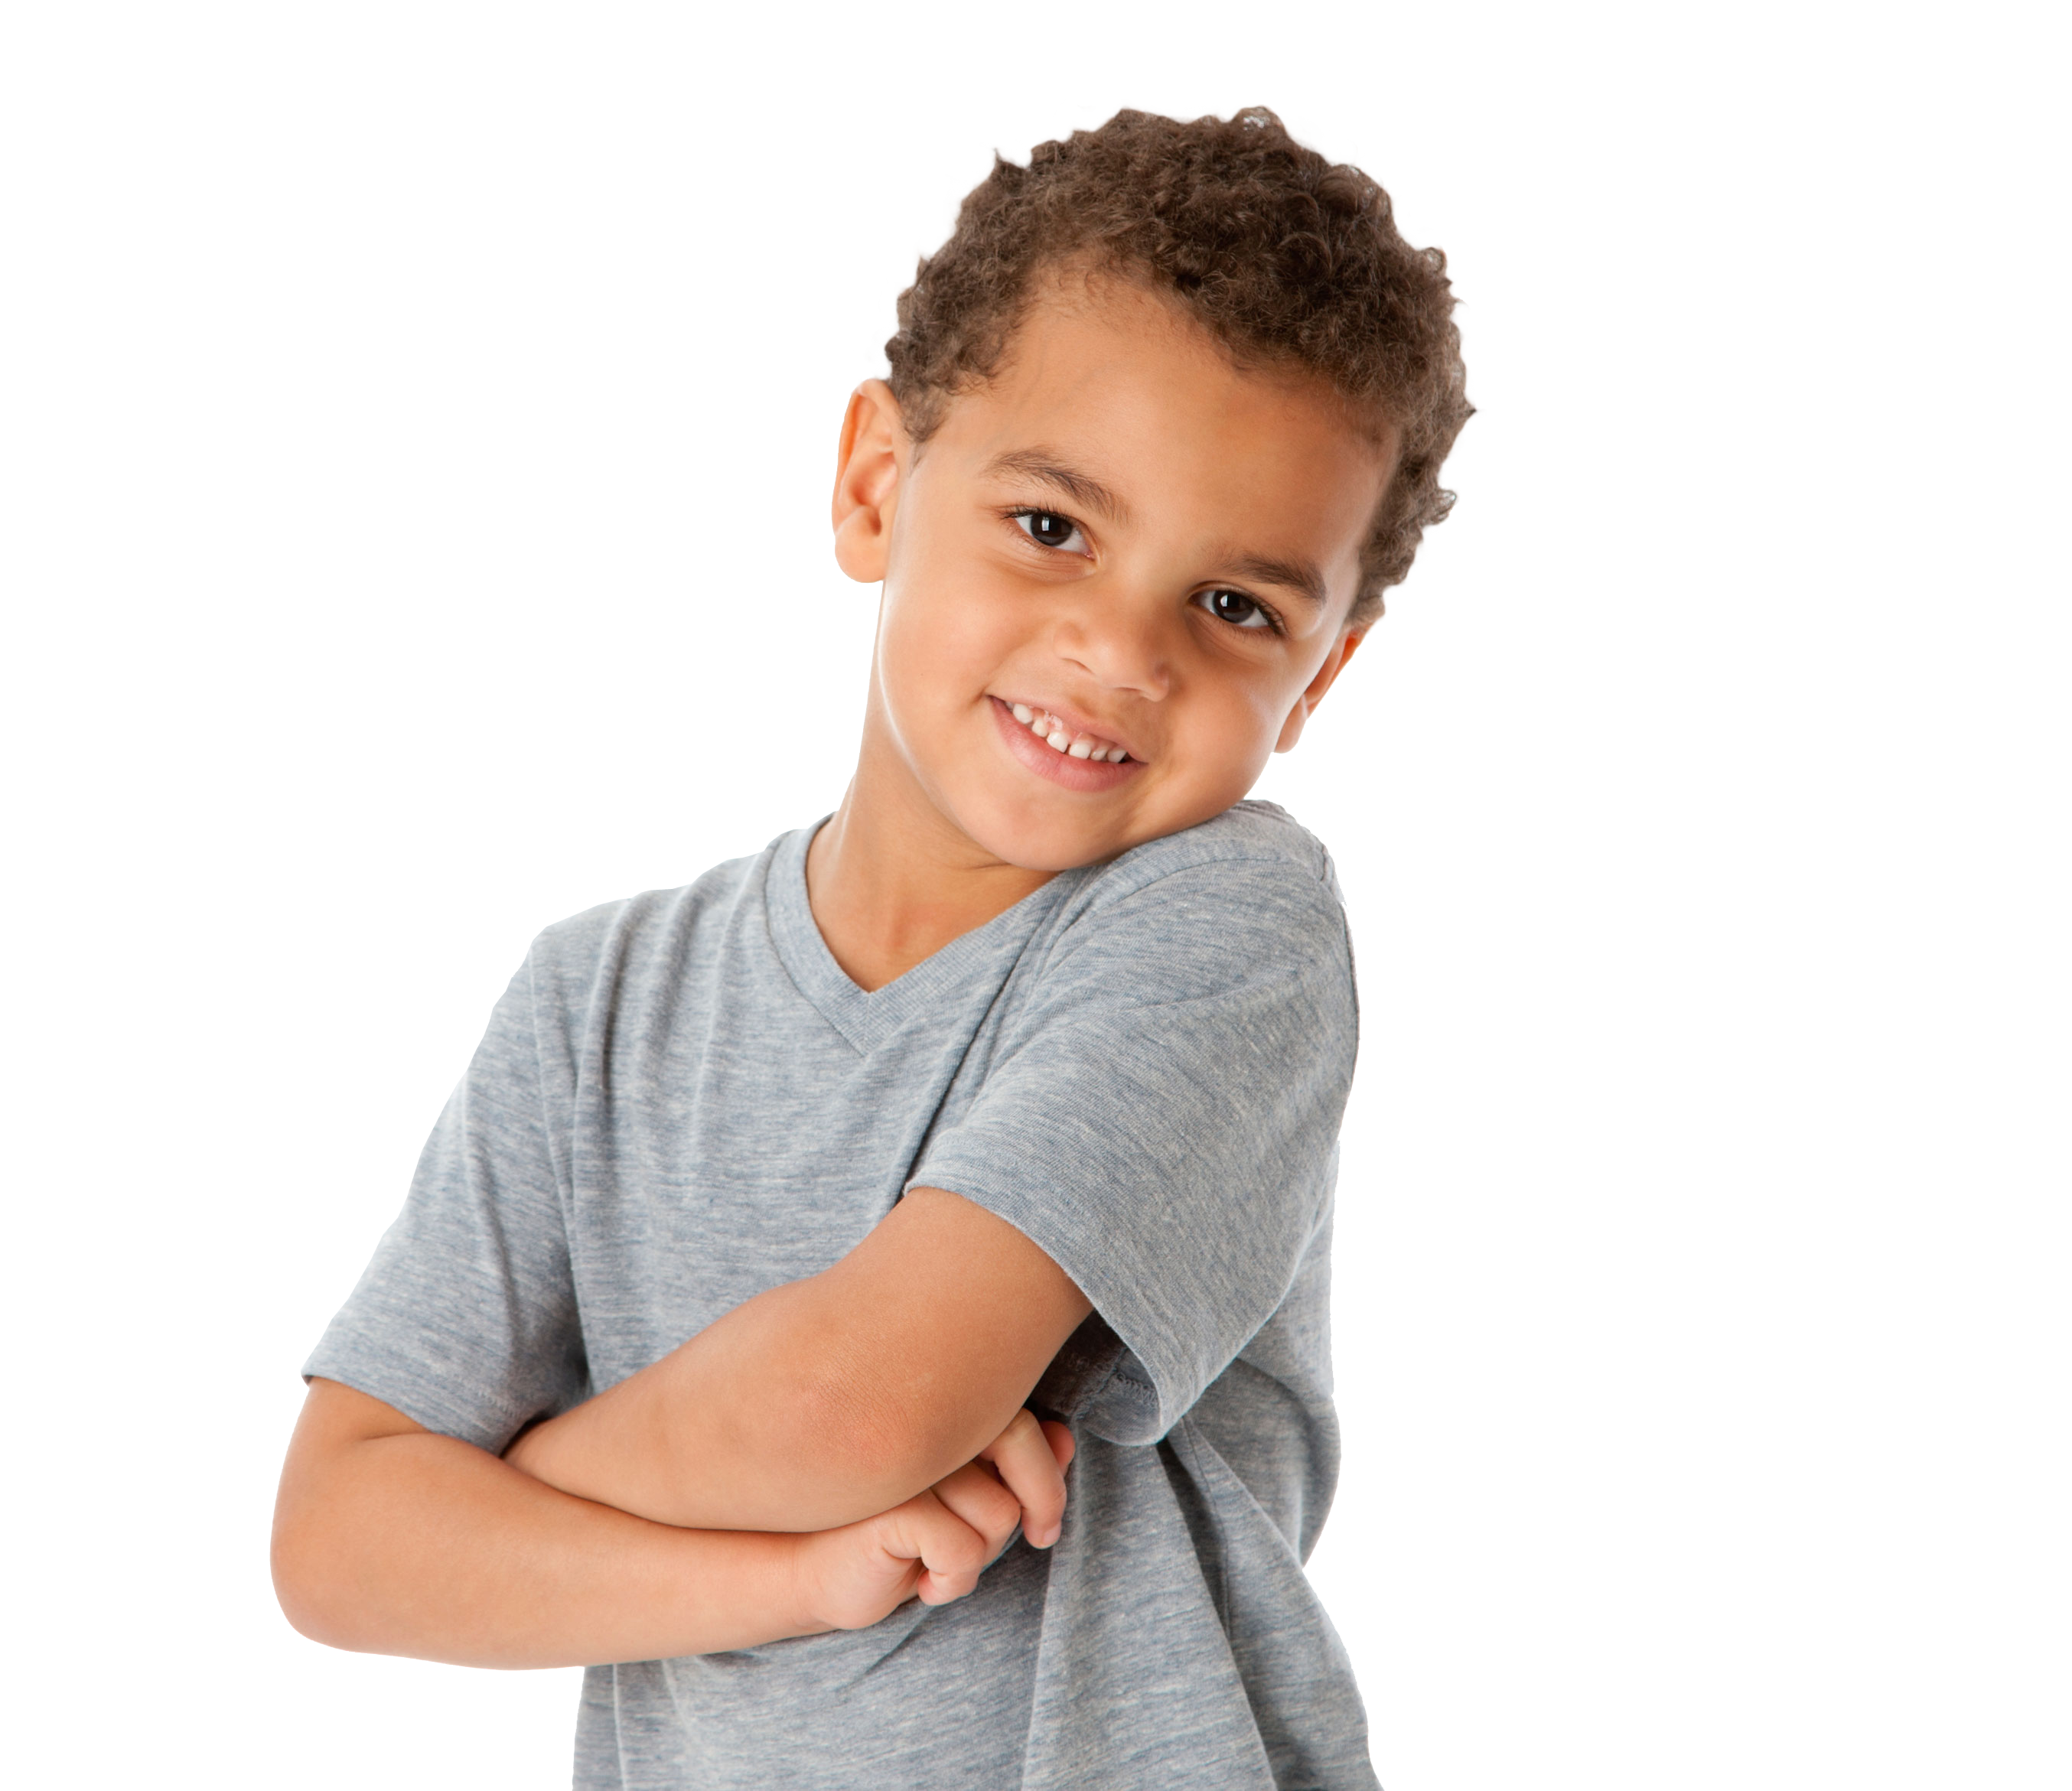 PlusPng pluspng.com Child PNG PlusPng pluspng.com - Kids Smiling PNG HD . - African American Baby PNG HD